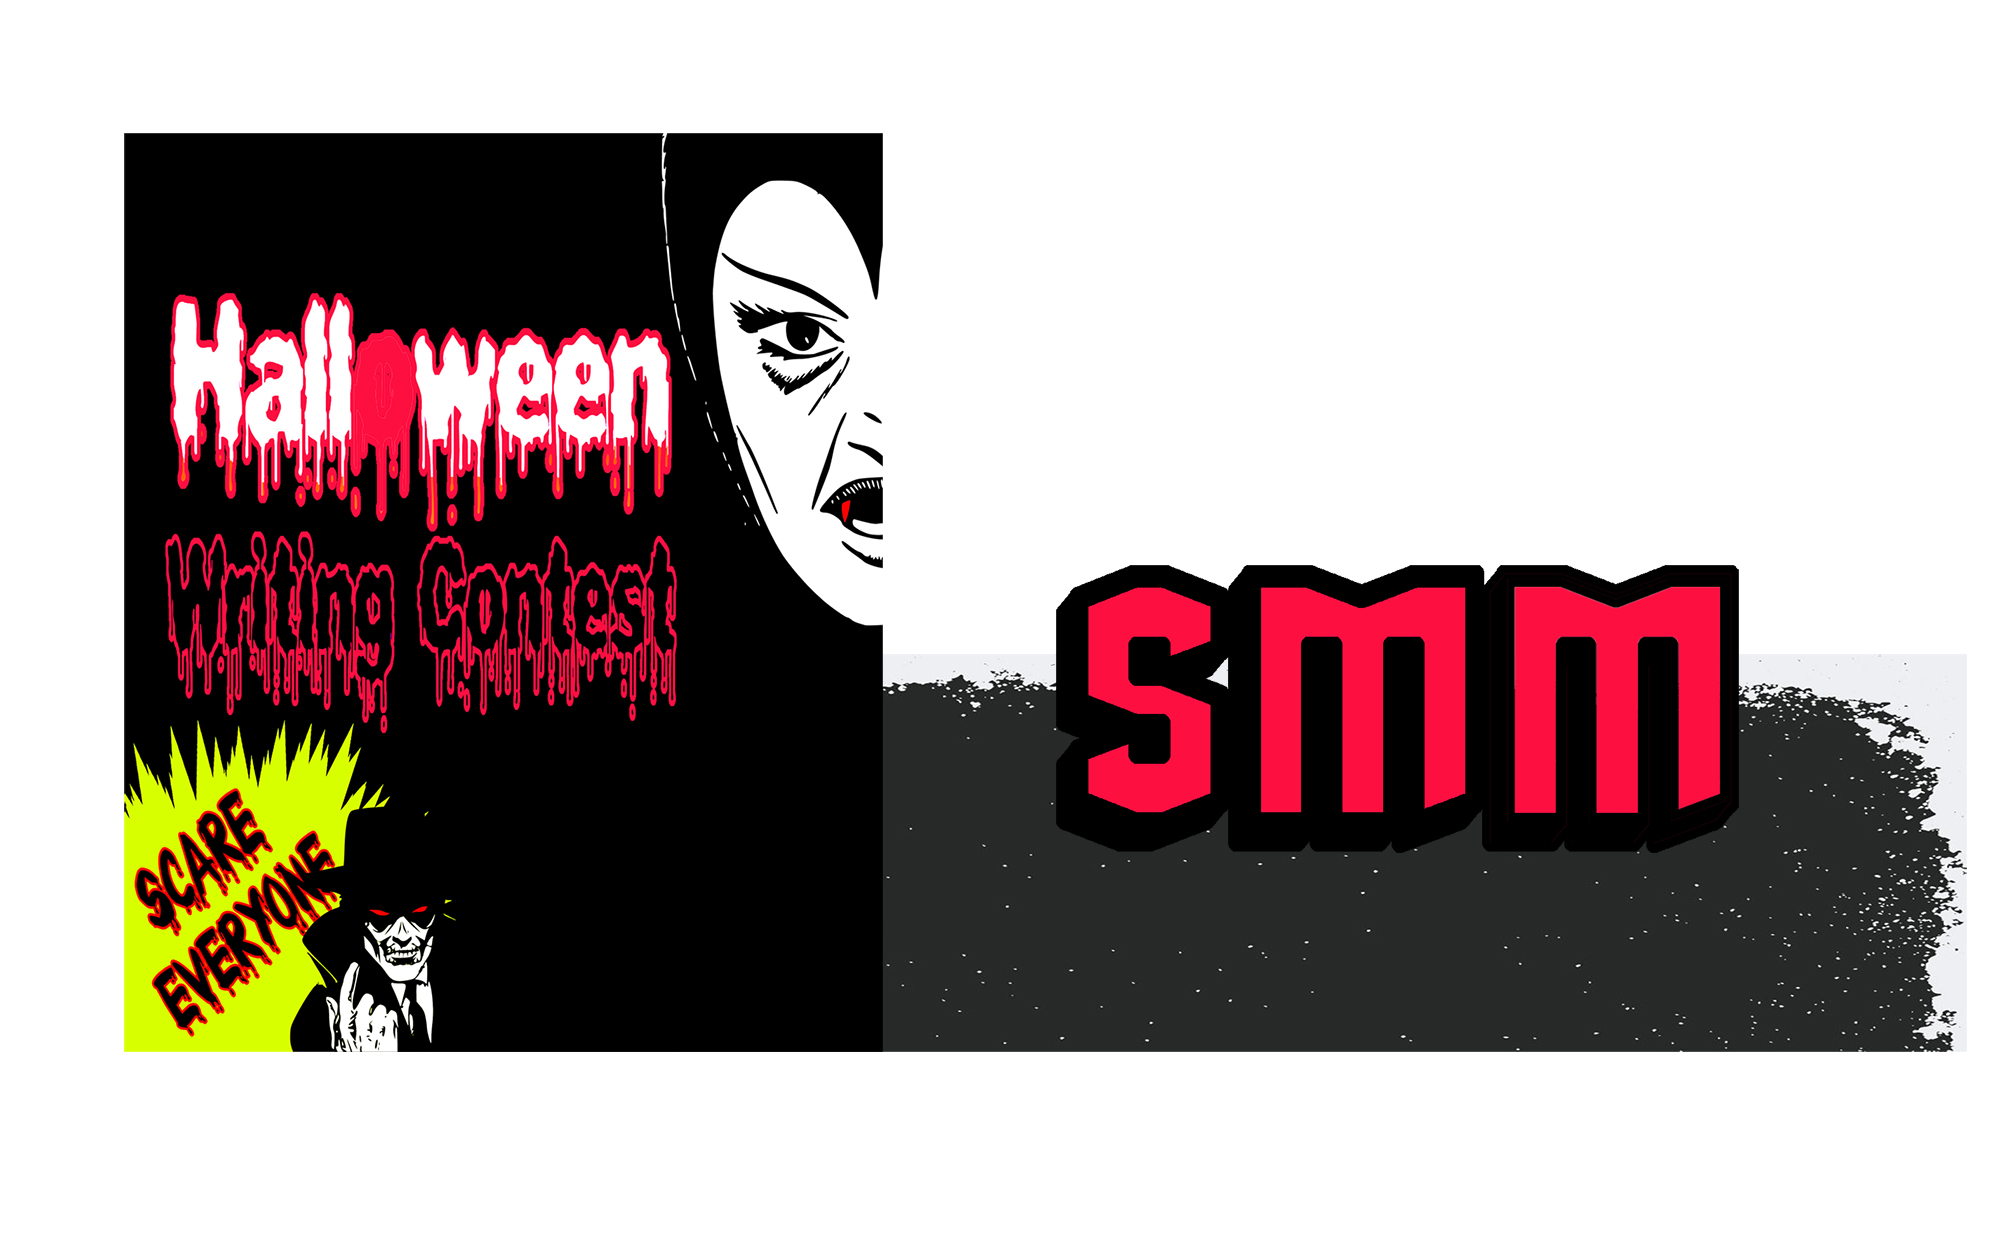 Raise the Dead: Enter into the SMM 2017 Halloween Horror Writing Contest